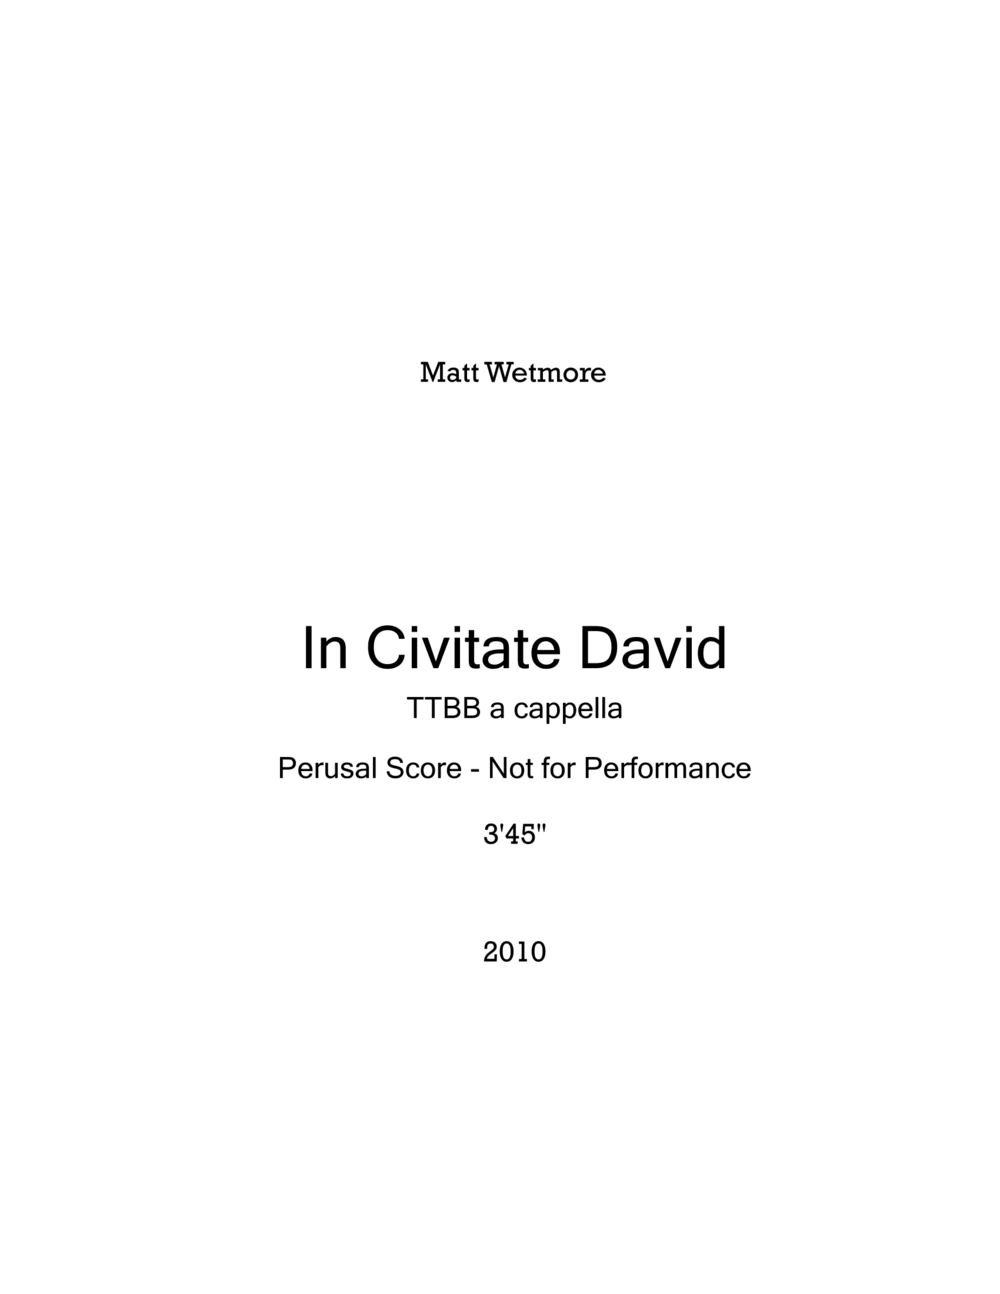 In Civitate David Perusal-1.png